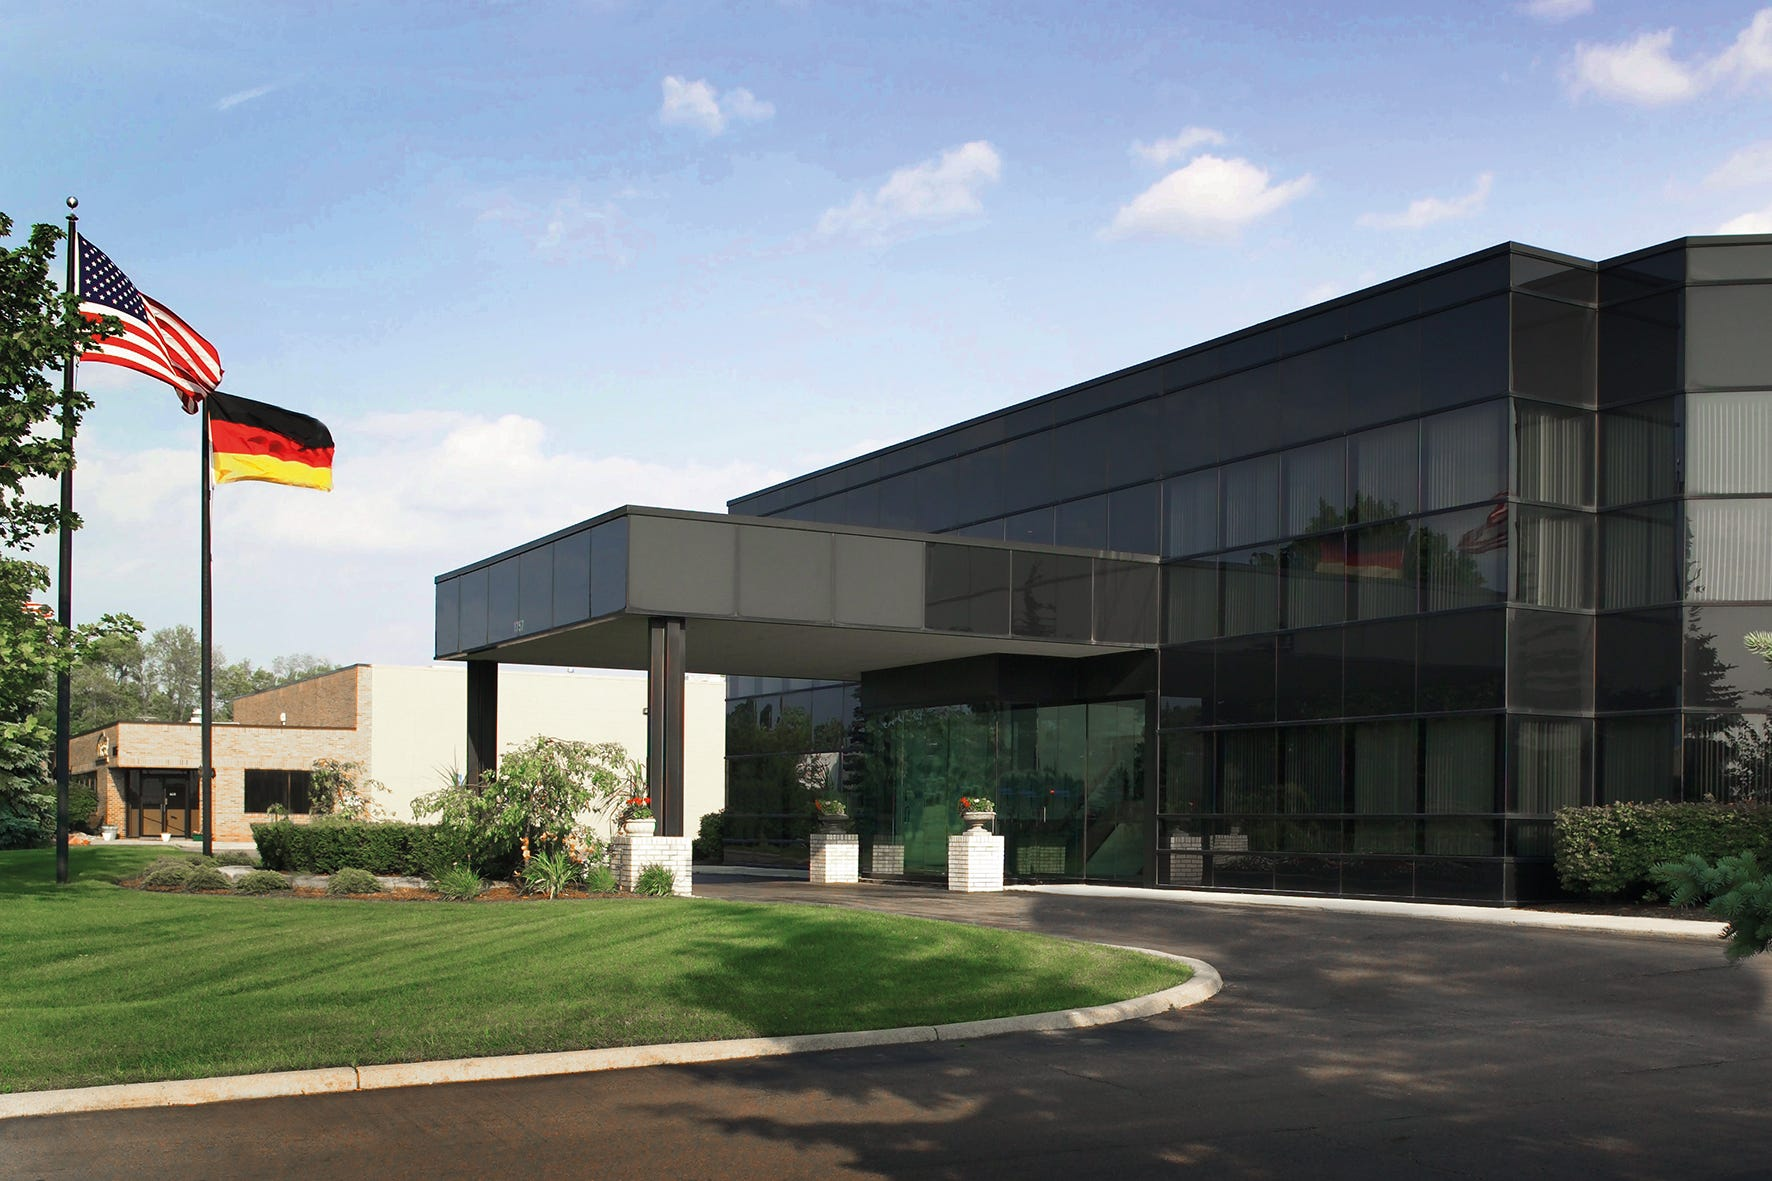 German Auto Supplier To Open Plant Employing 400 In Plymouth Township